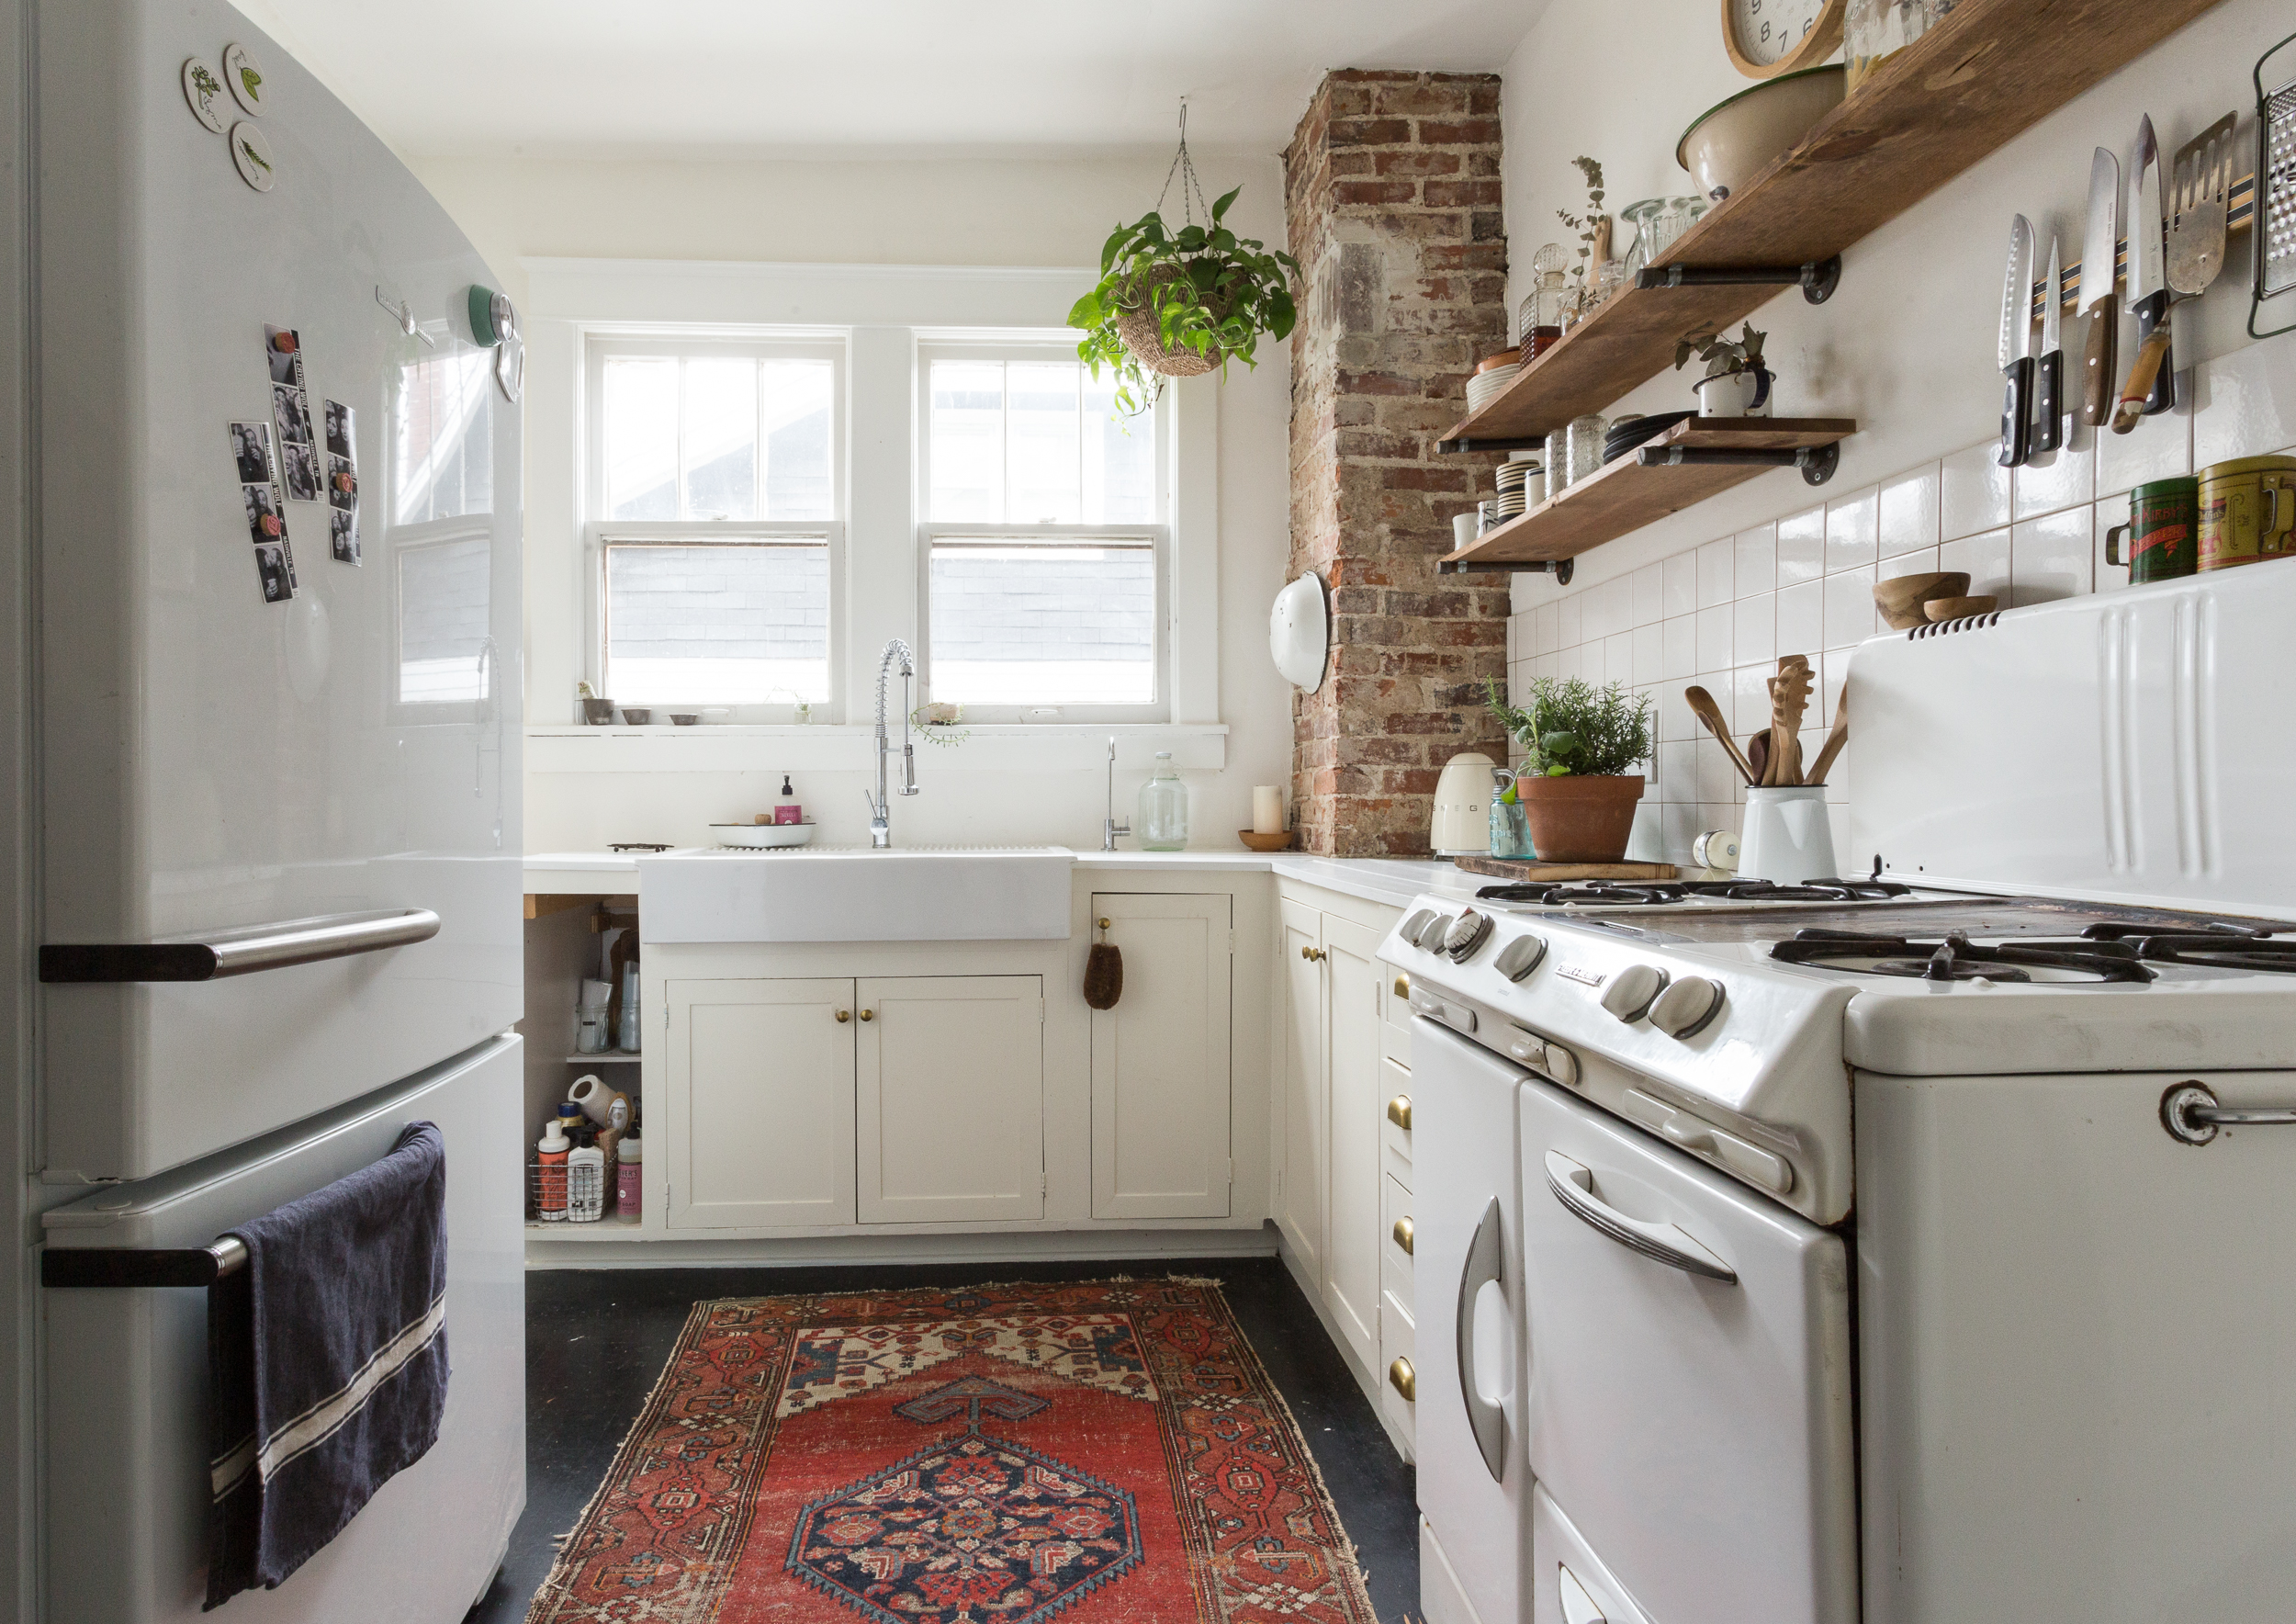 Tips for Choosing a Kitchen Rug | Kitchn